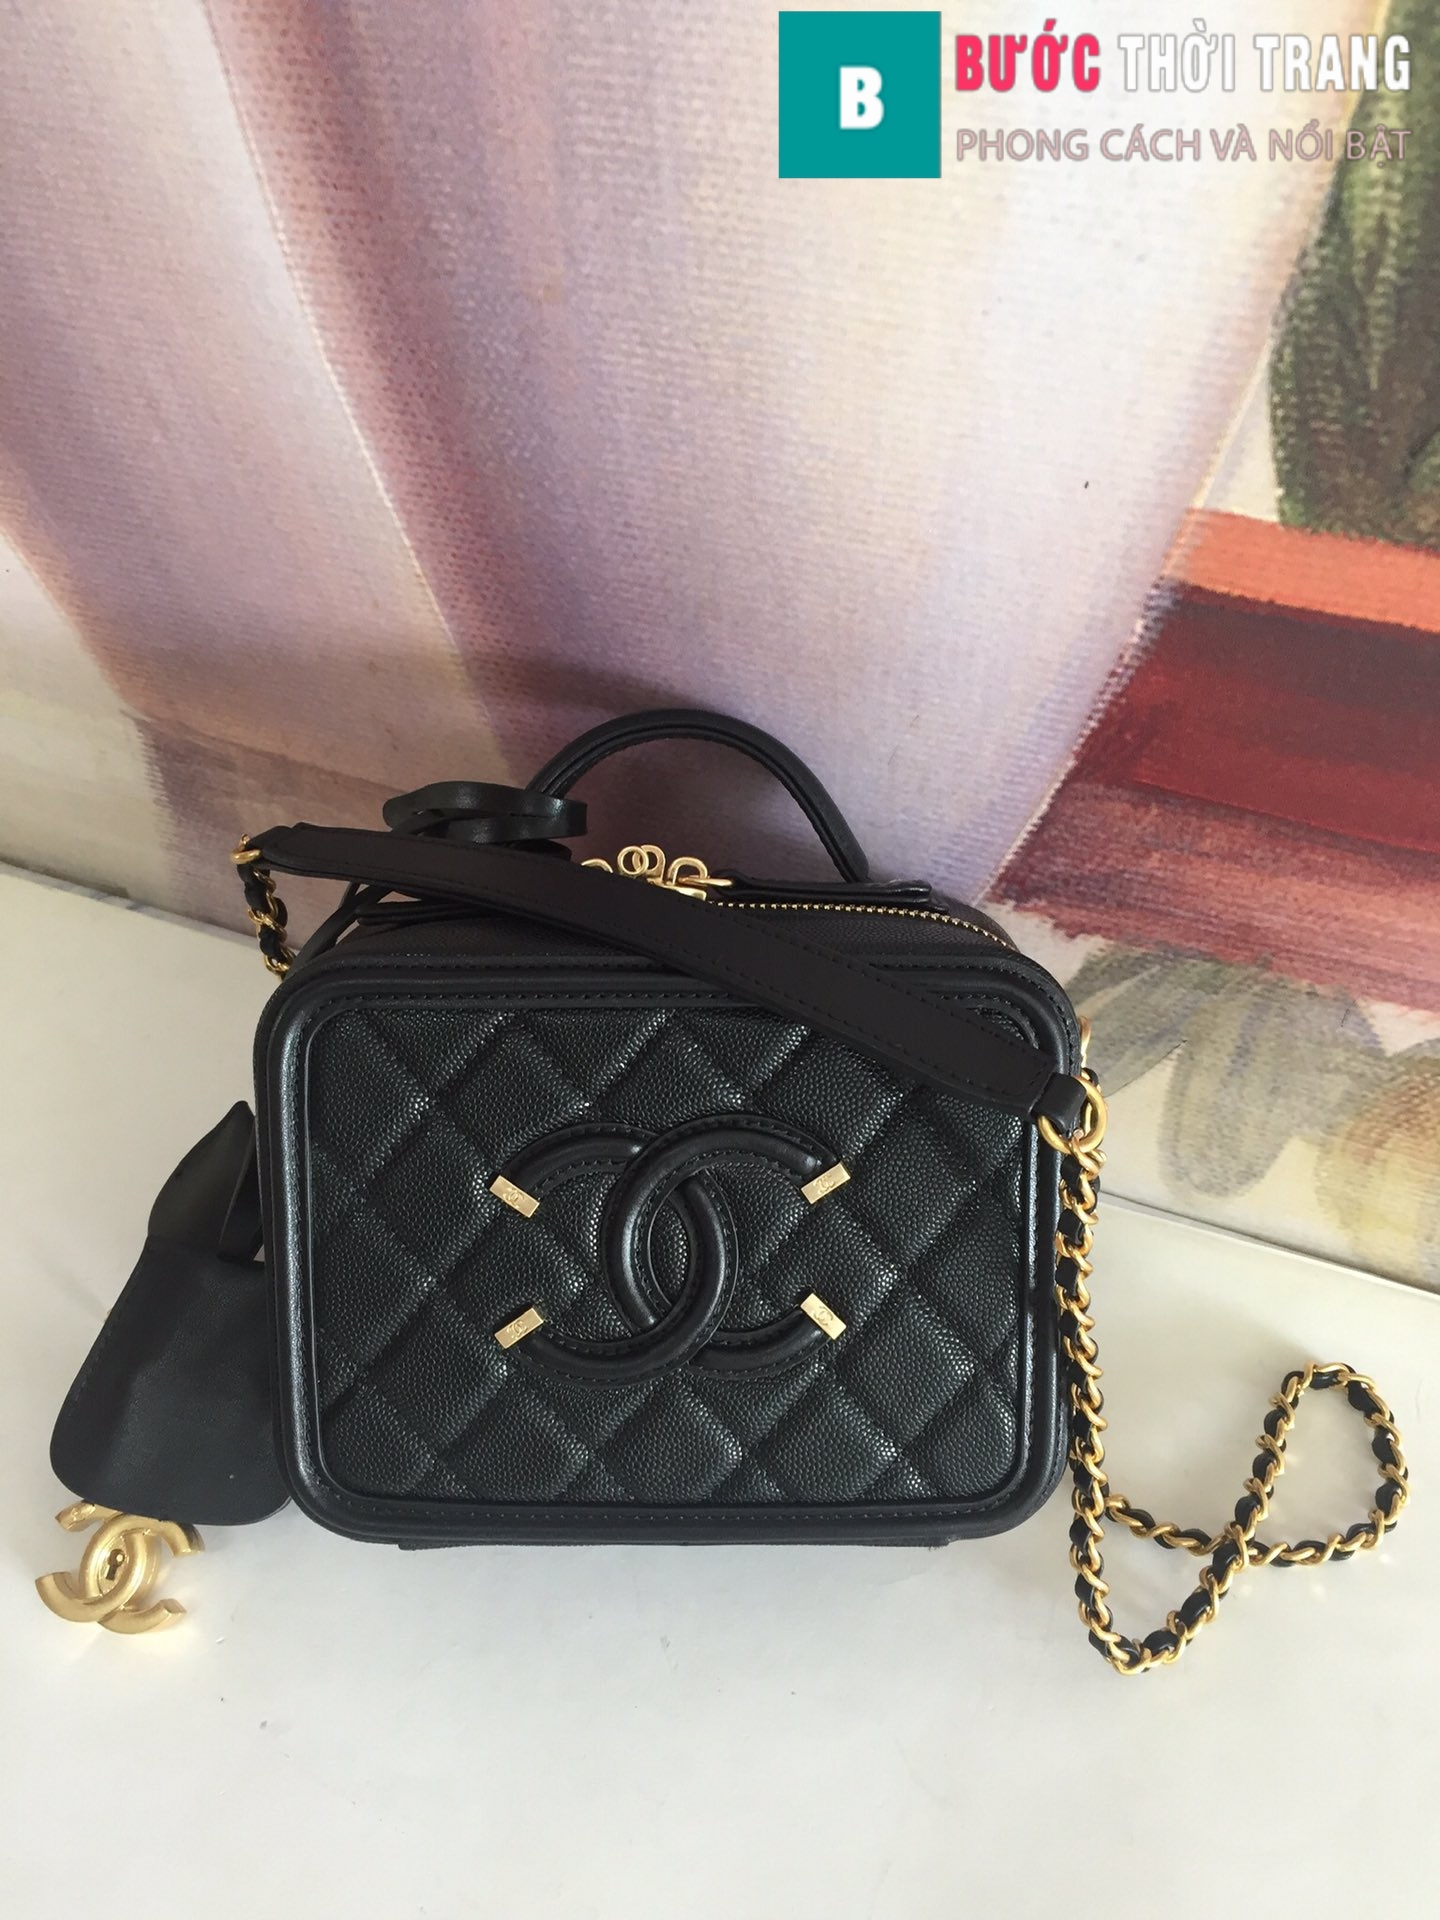 Túi xách Chanel Vanity case bag (73)